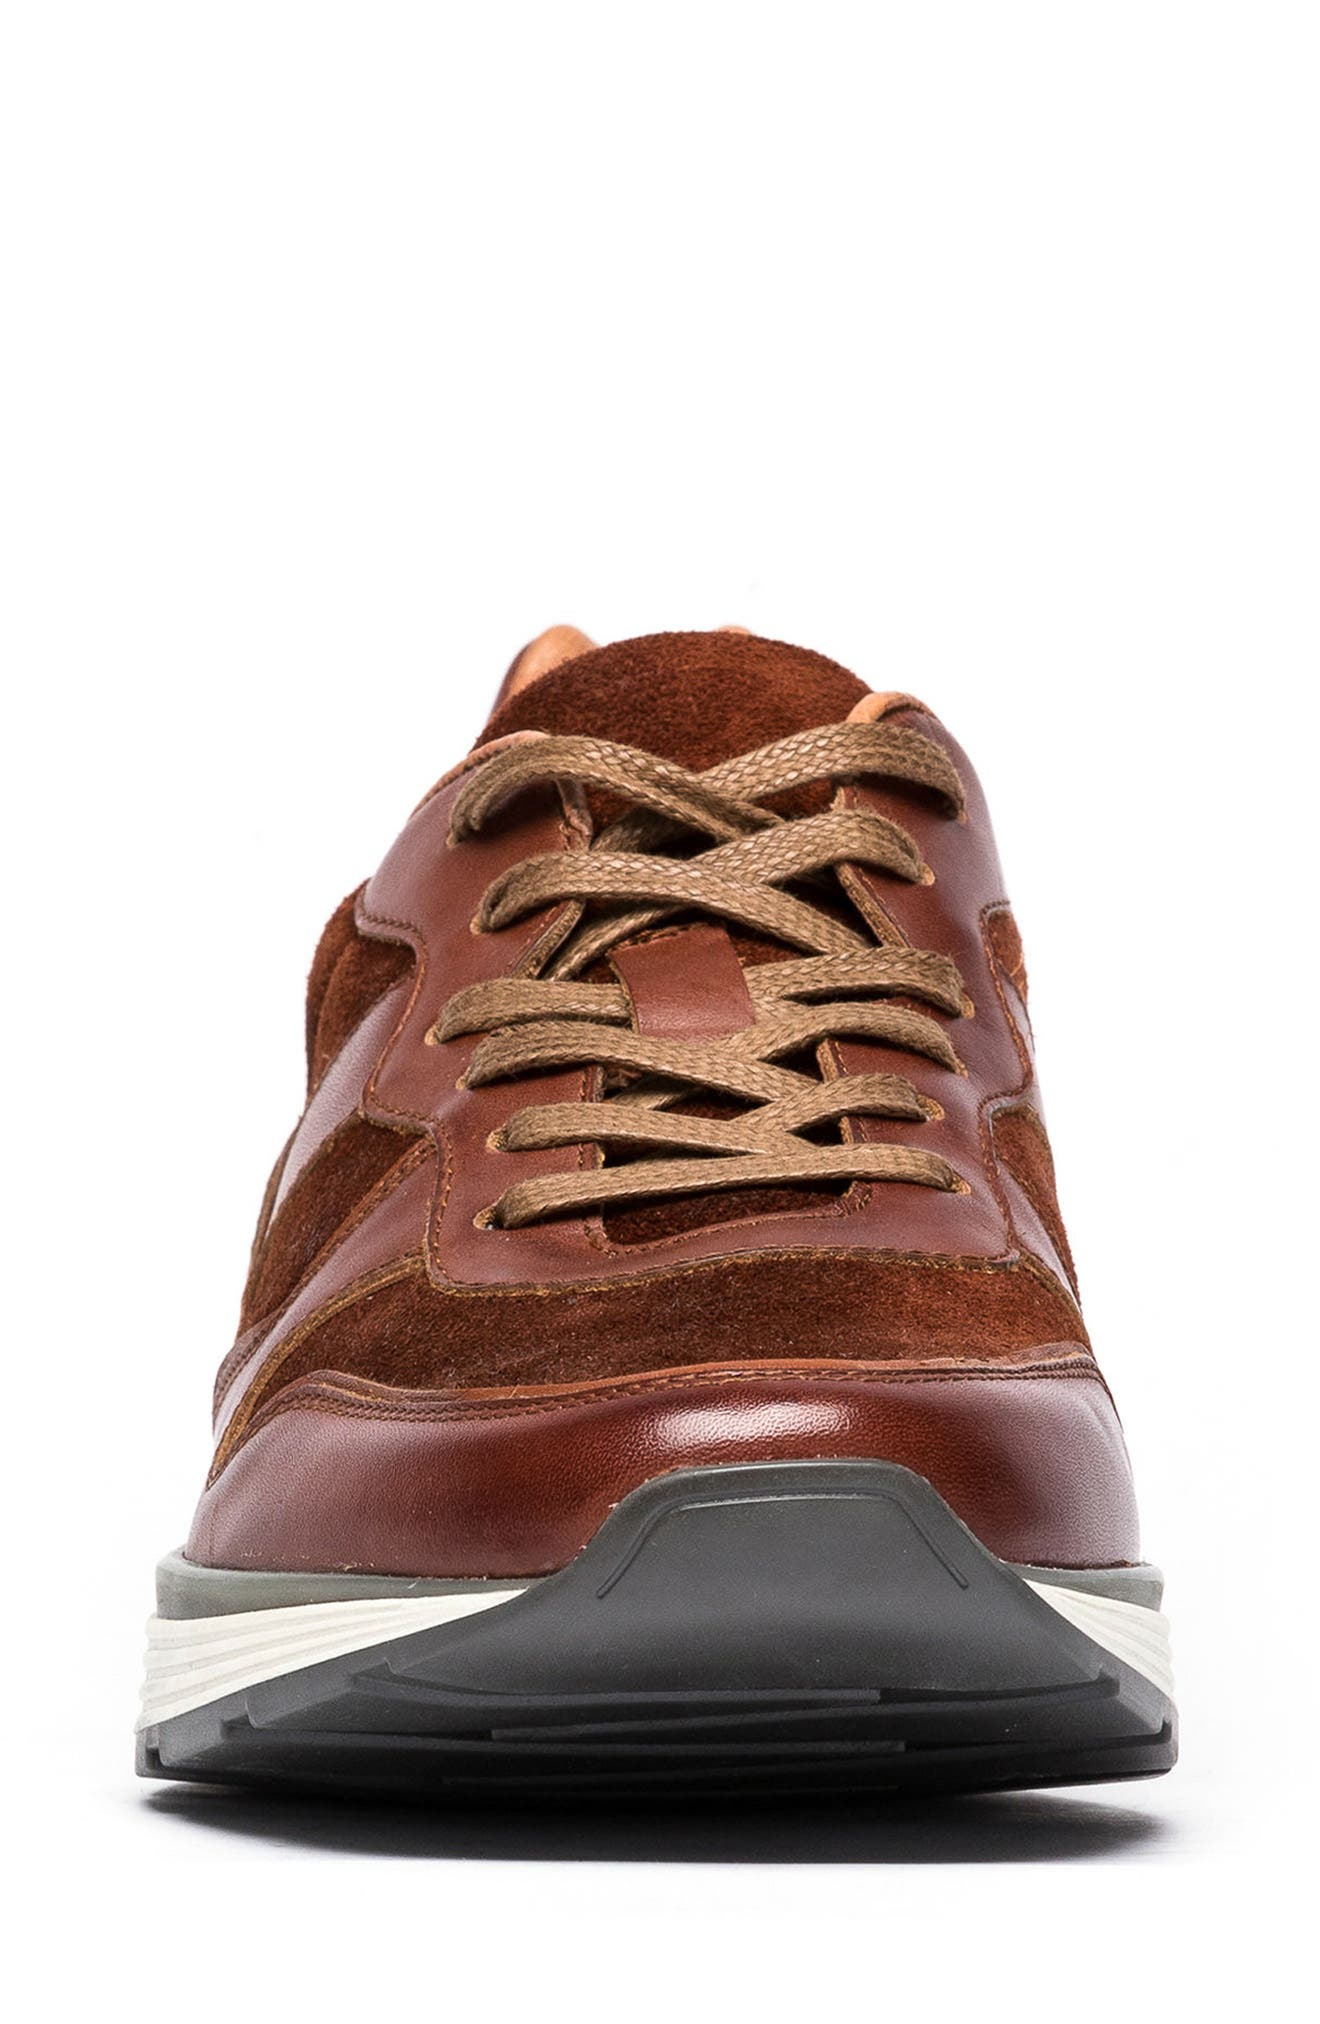 Hickory Sneaker,                             Alternate thumbnail 4, color,                             Tan Leather